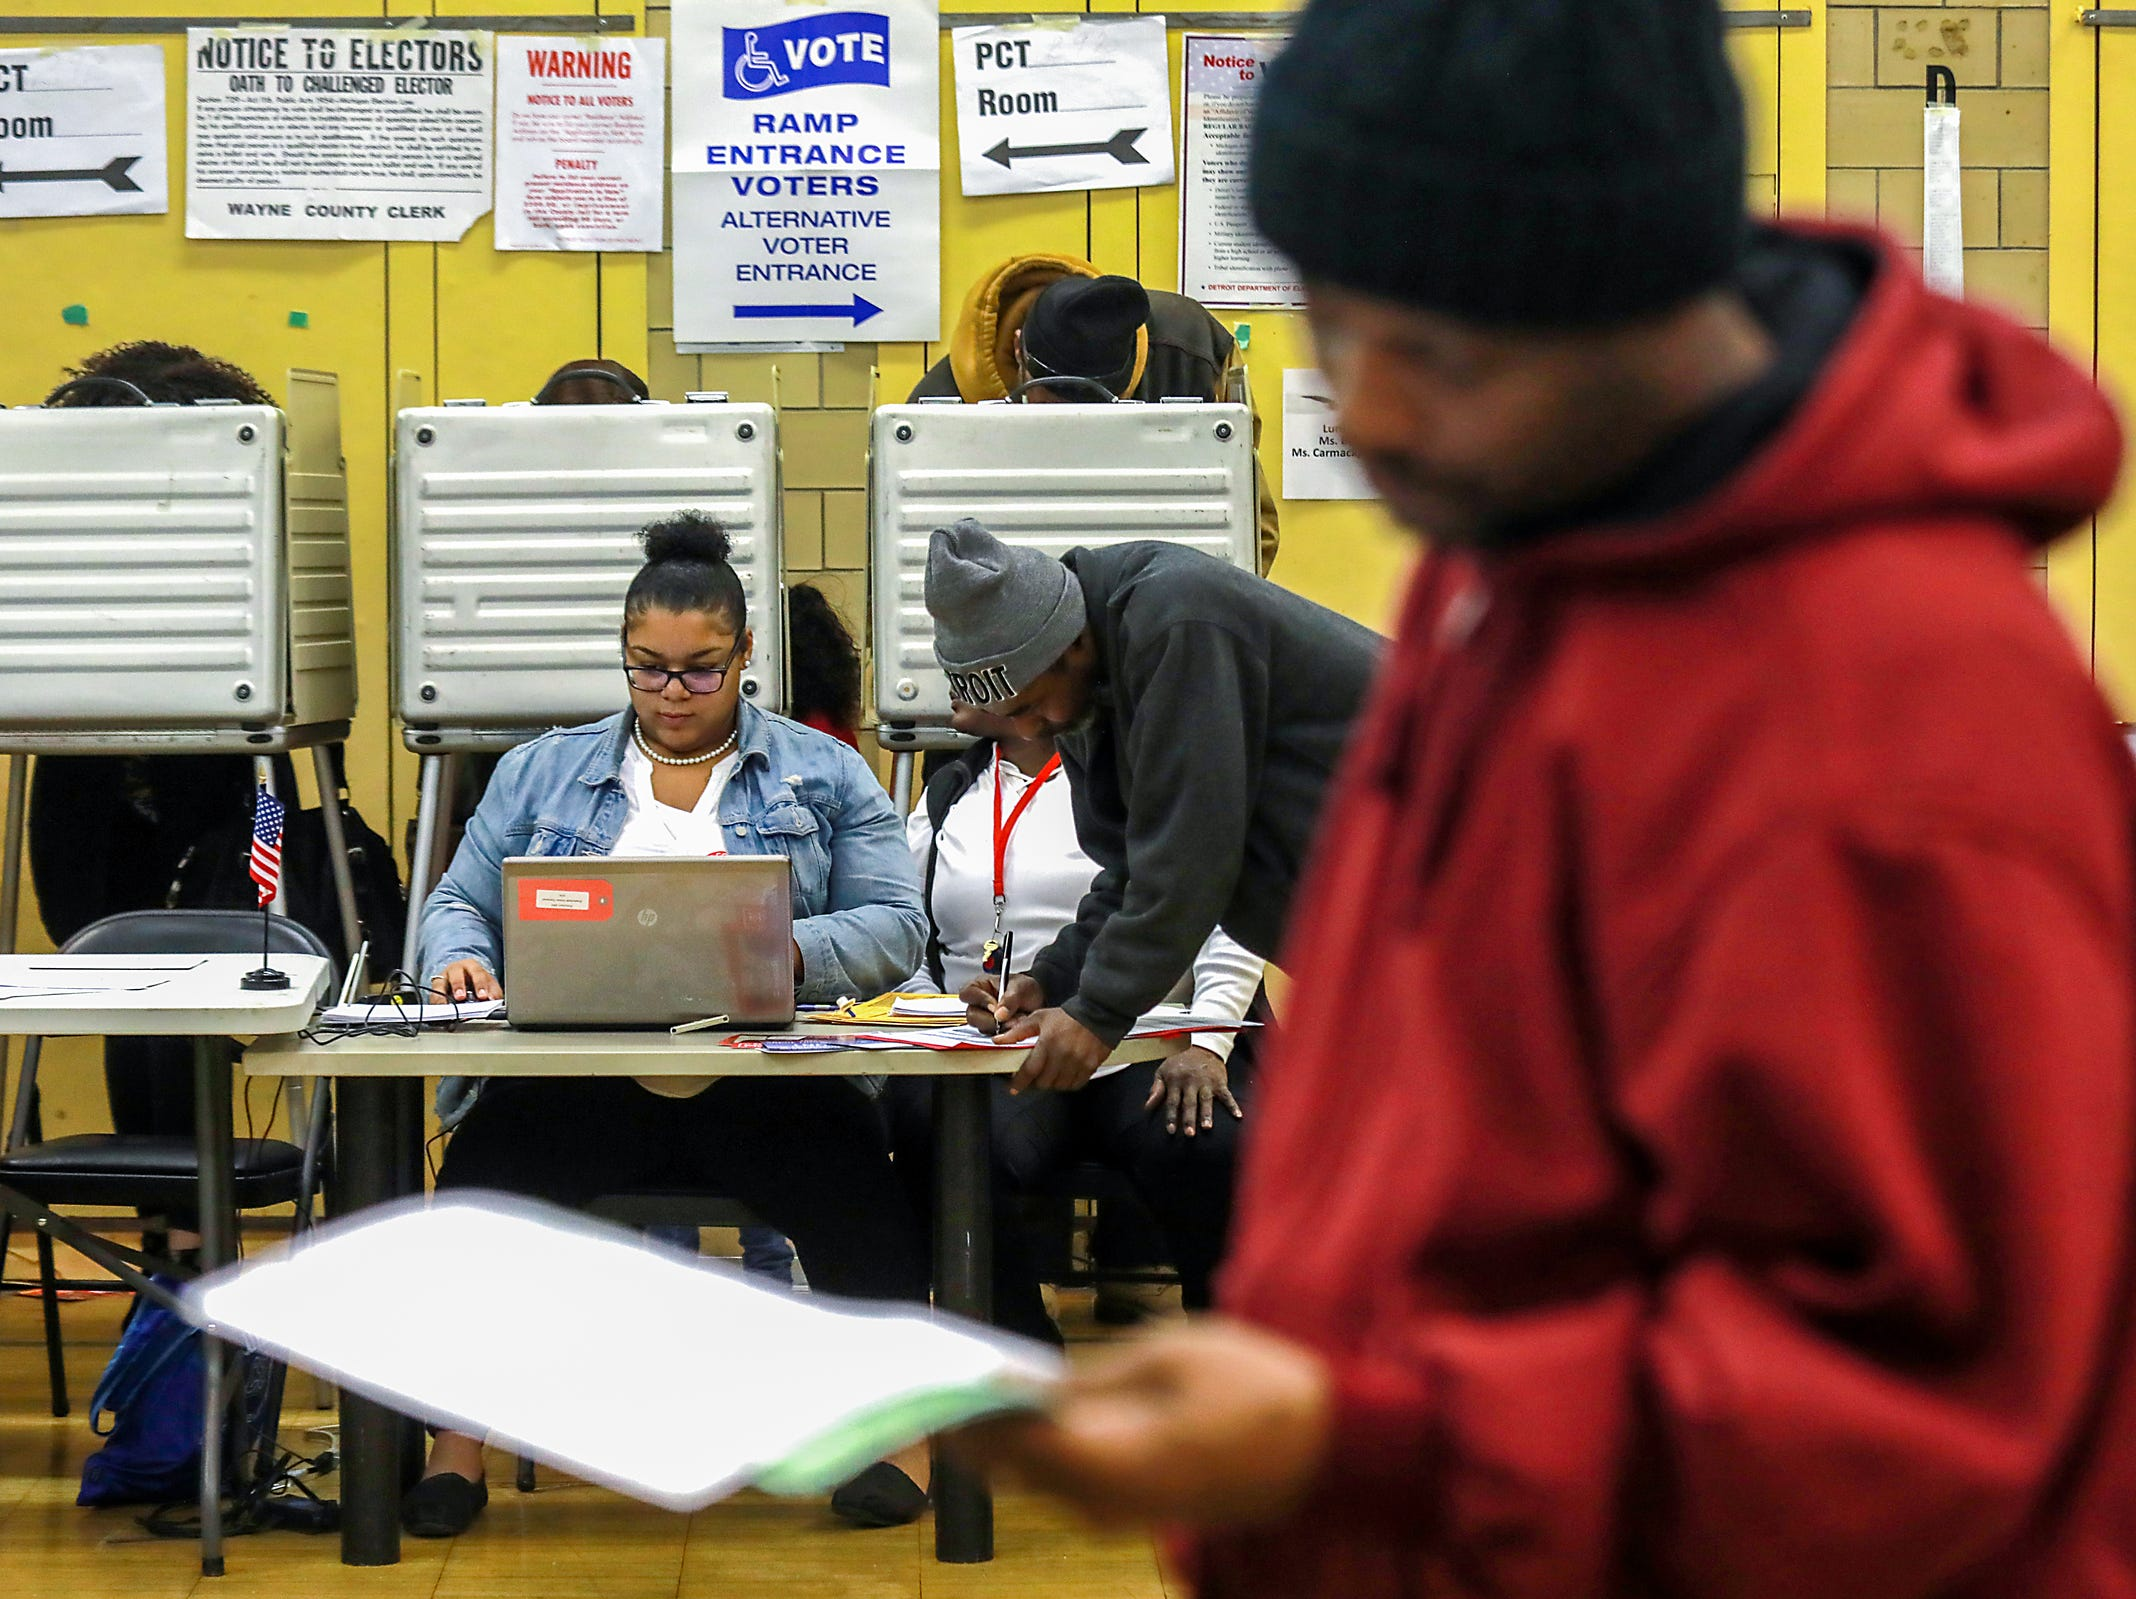 Tiara Taylor, 22, works as an electronic poll worker at Bow elementary-middle school on Michigan midterm elections day in Detroit on Tuesday, Nov. 6, 2018.